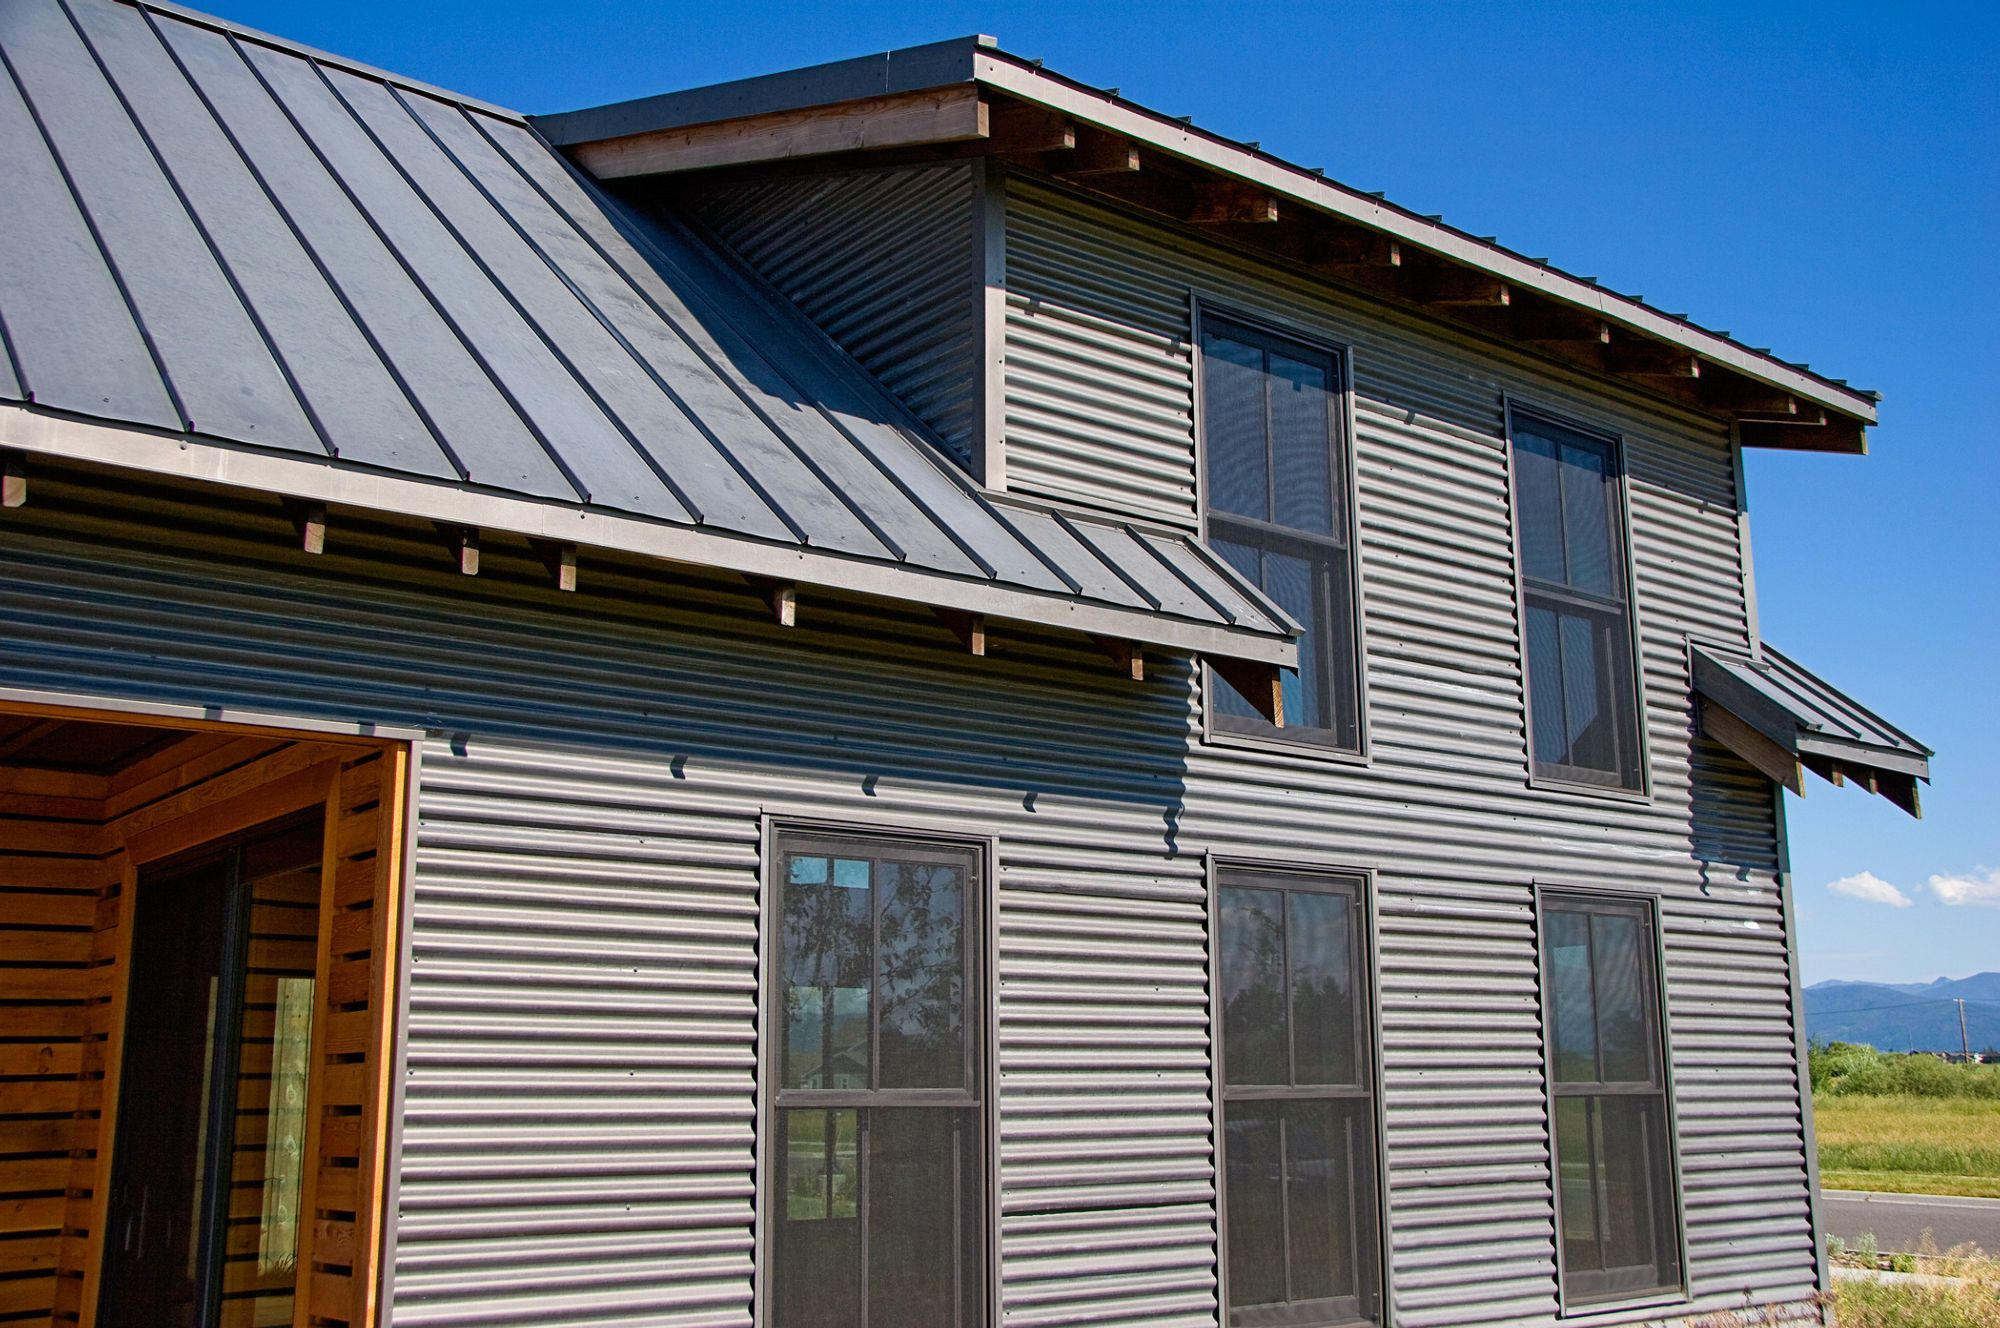 Bridger Steel Bonderized Metal Roofing And Siding Panel Corrugated Metal Siding Steel Siding Metal Siding